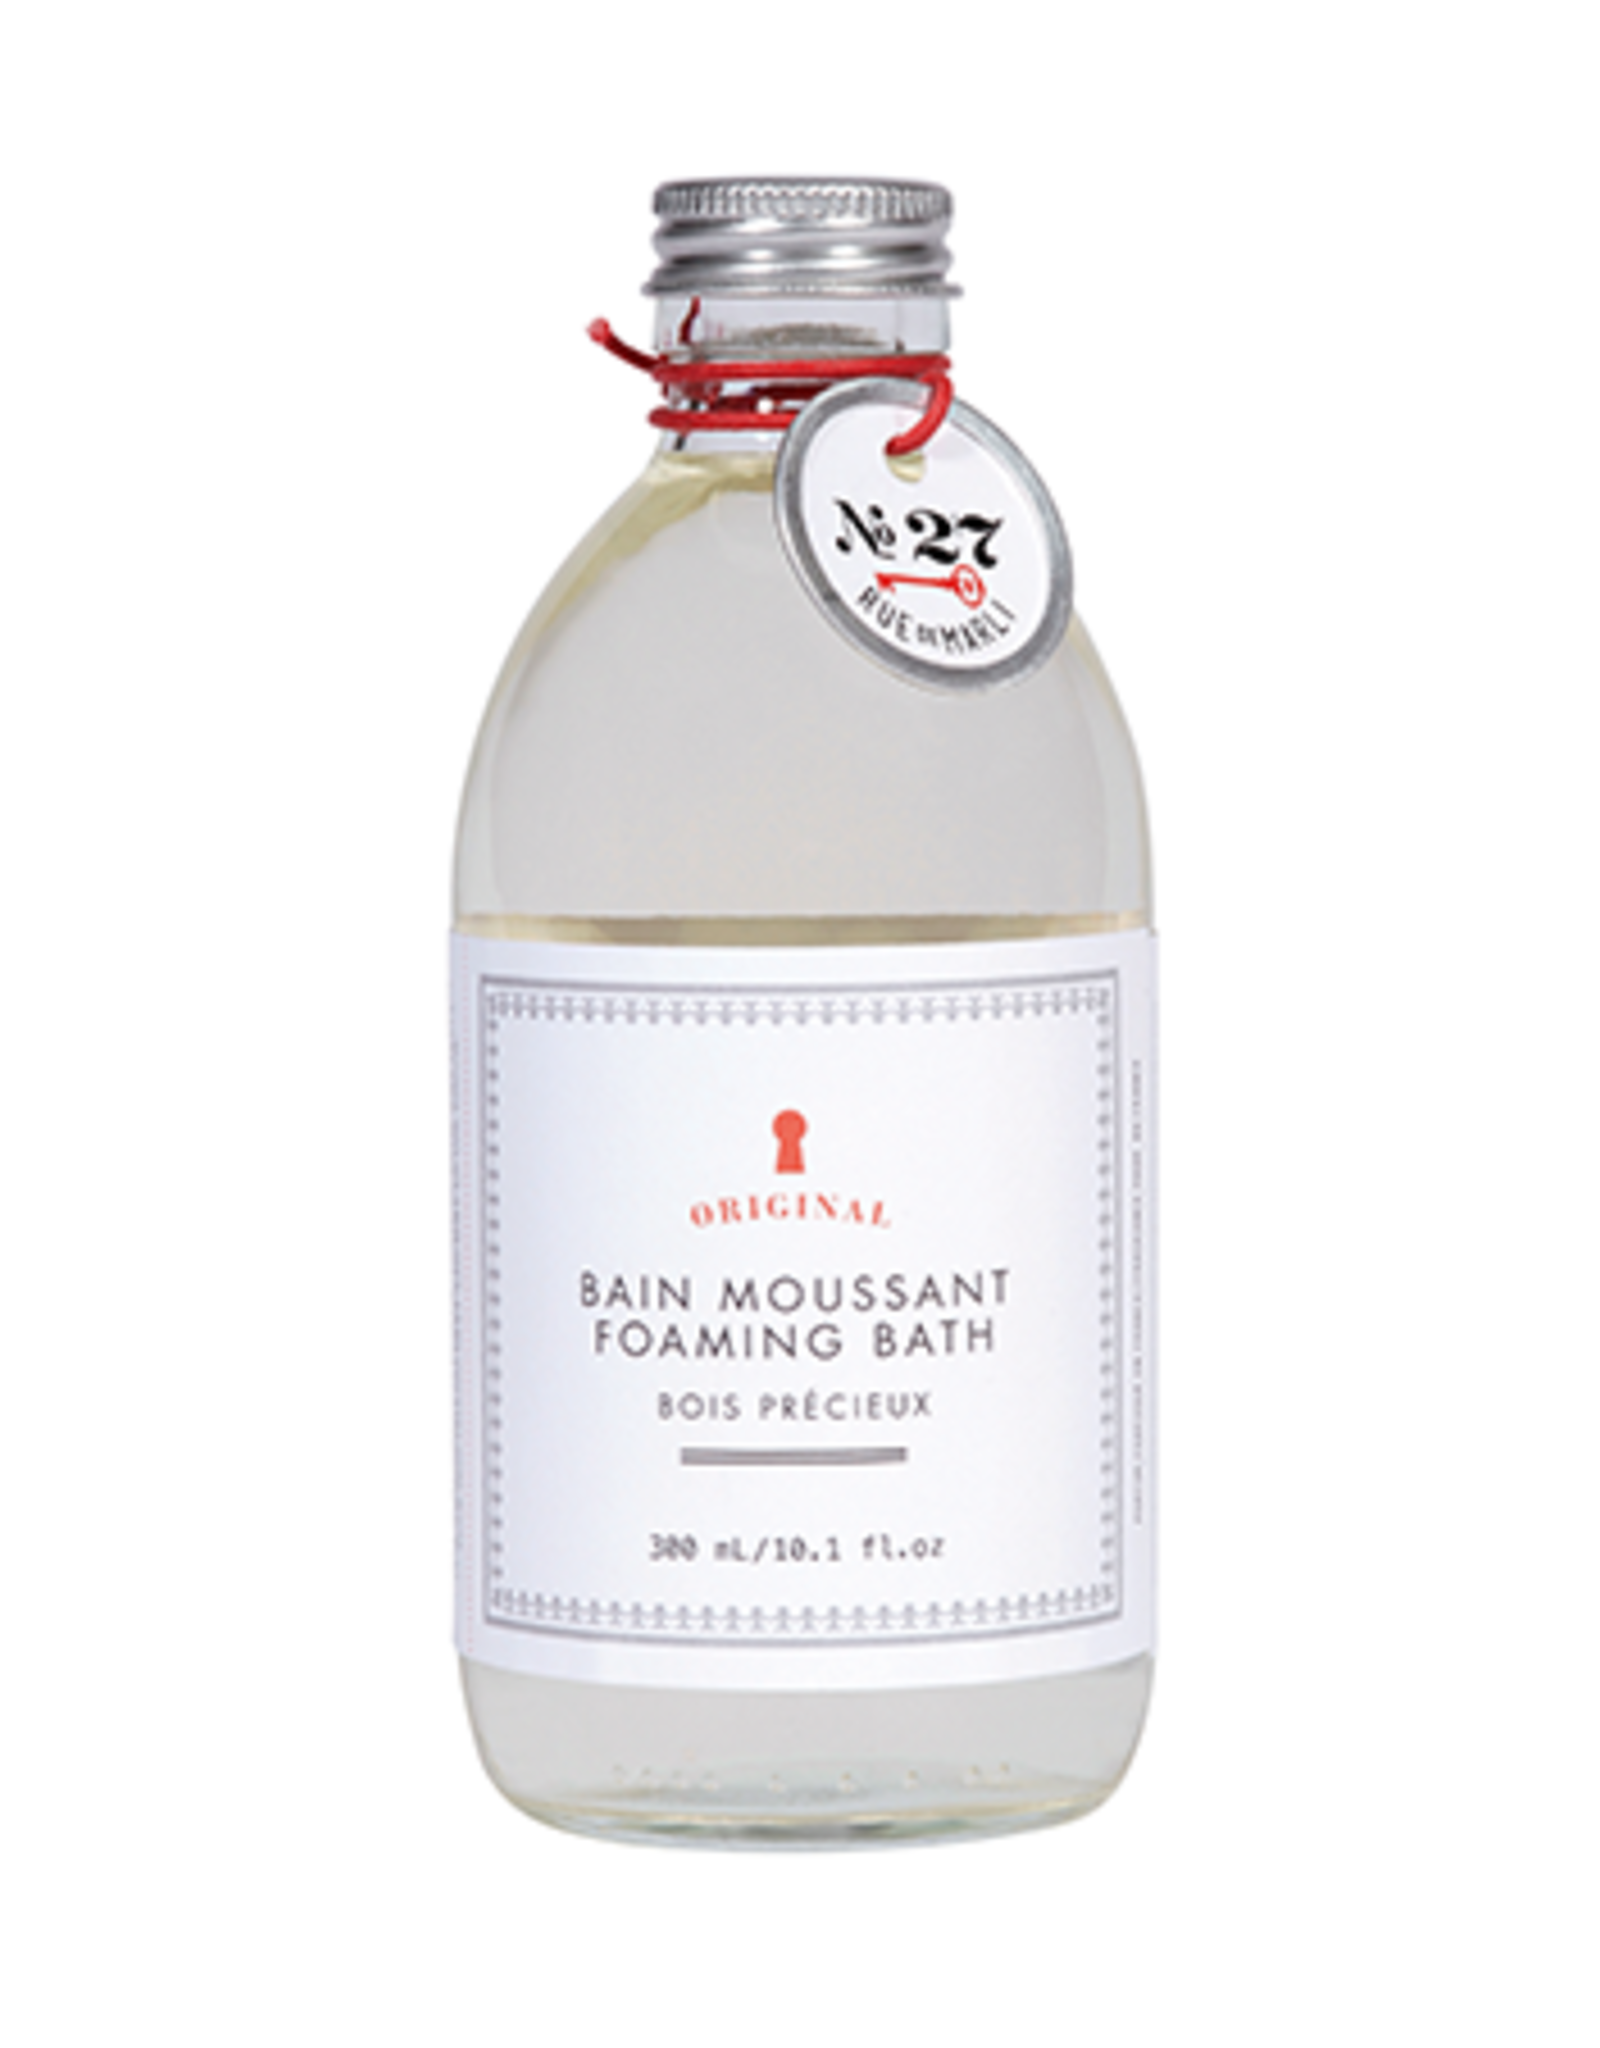 Lucia  par  Pure Living Bain moussant marli #27 300ml